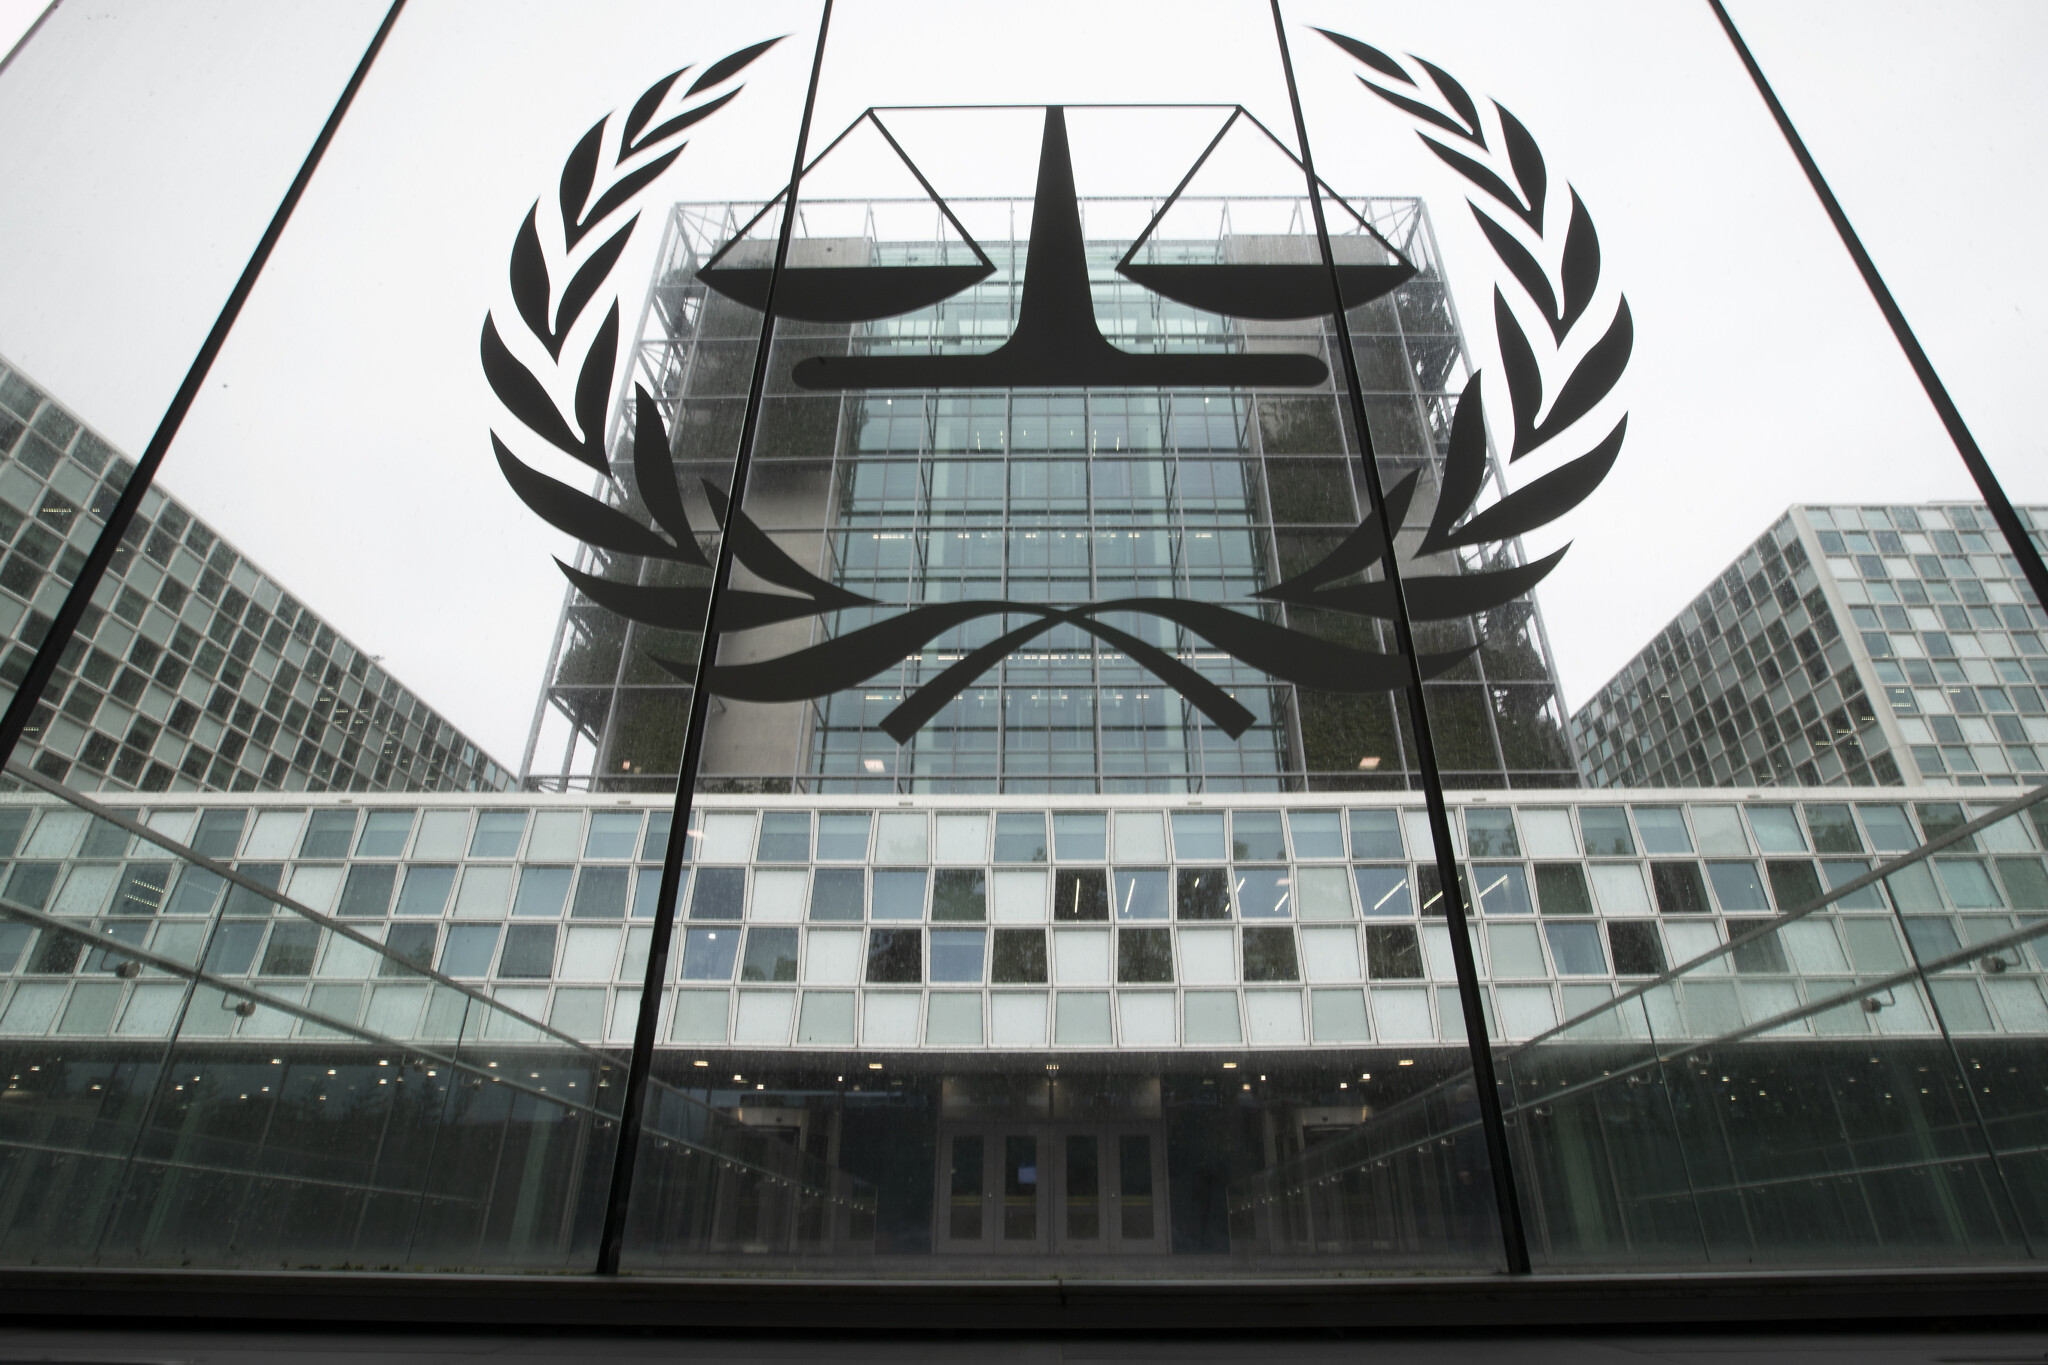 This file image from November 7, 2019 shows the International Criminal Court, or ICC, in The Hague, Netherlands. (AP Photo/Peter Dejong)